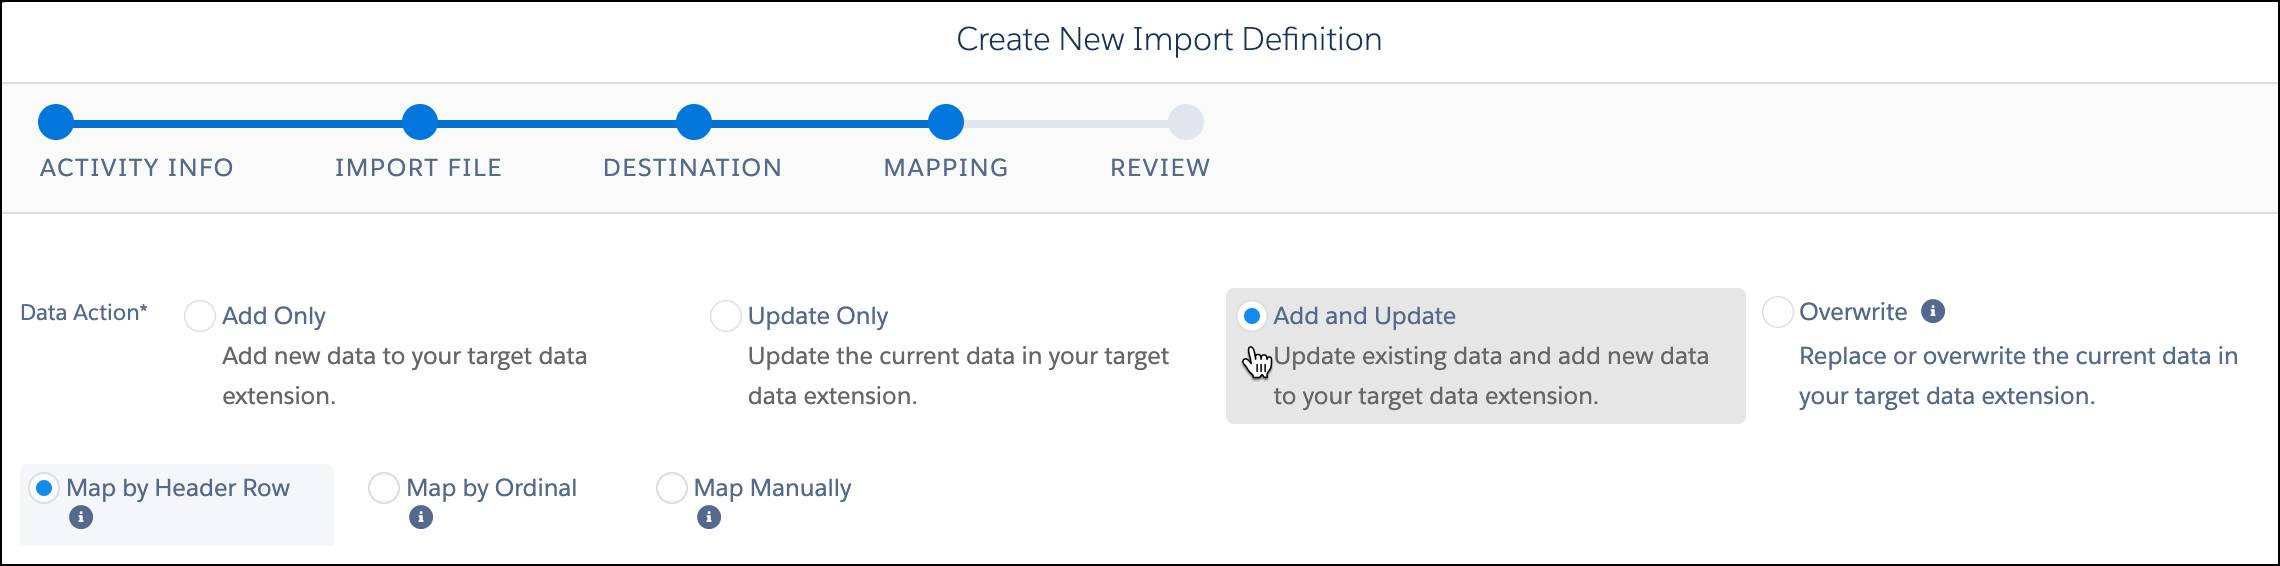 Add and Update and Map by Header Row selected in import definition.